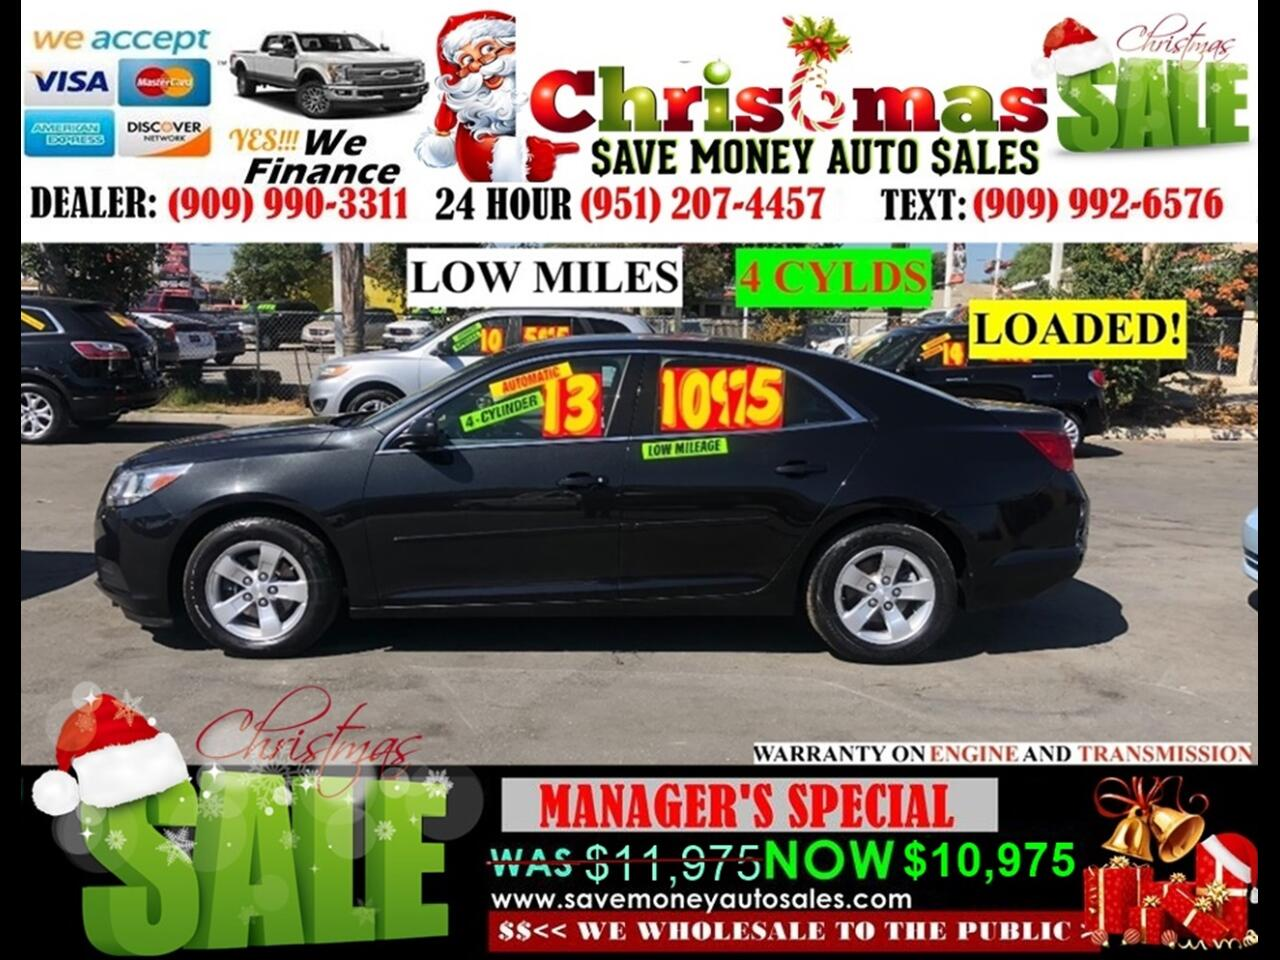 2013 Chevrolet Malibu LS>BLUETOOTH,4 CYLINDERS AND MORE!!!!